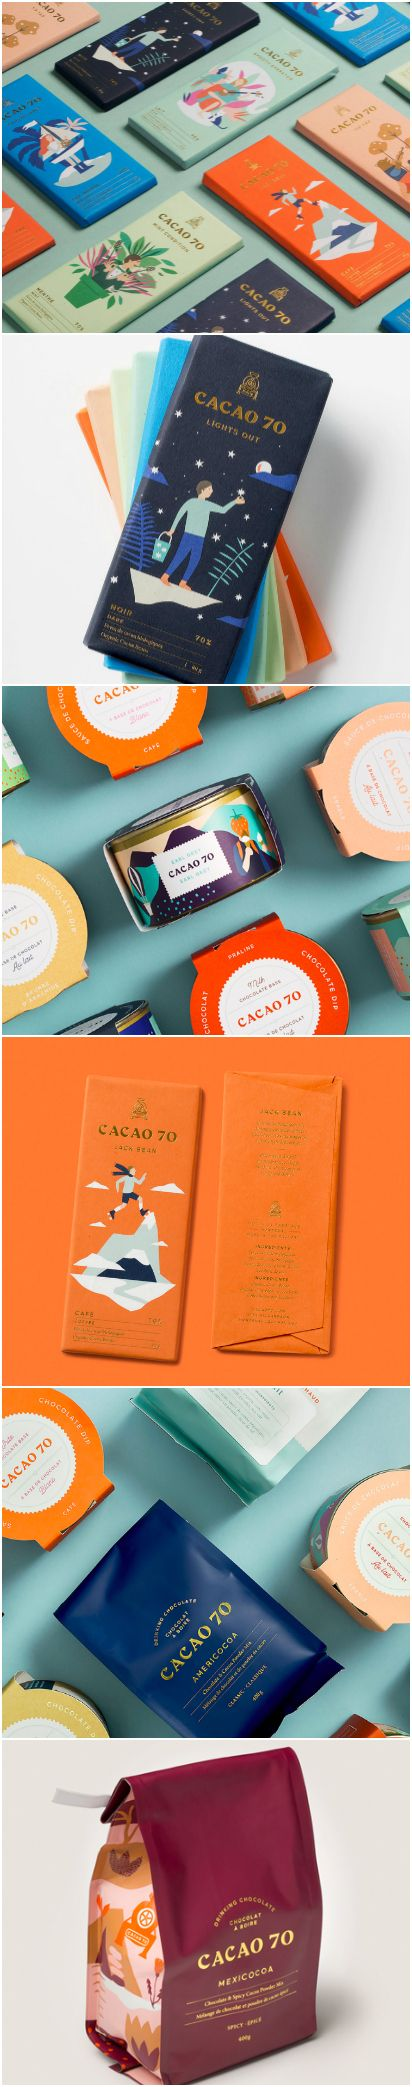 Design Agency IN GOOD COMPANY Brand Consultancy Project name:Cacao 70 Location: Canada Category: #Confectionary #Chocolate